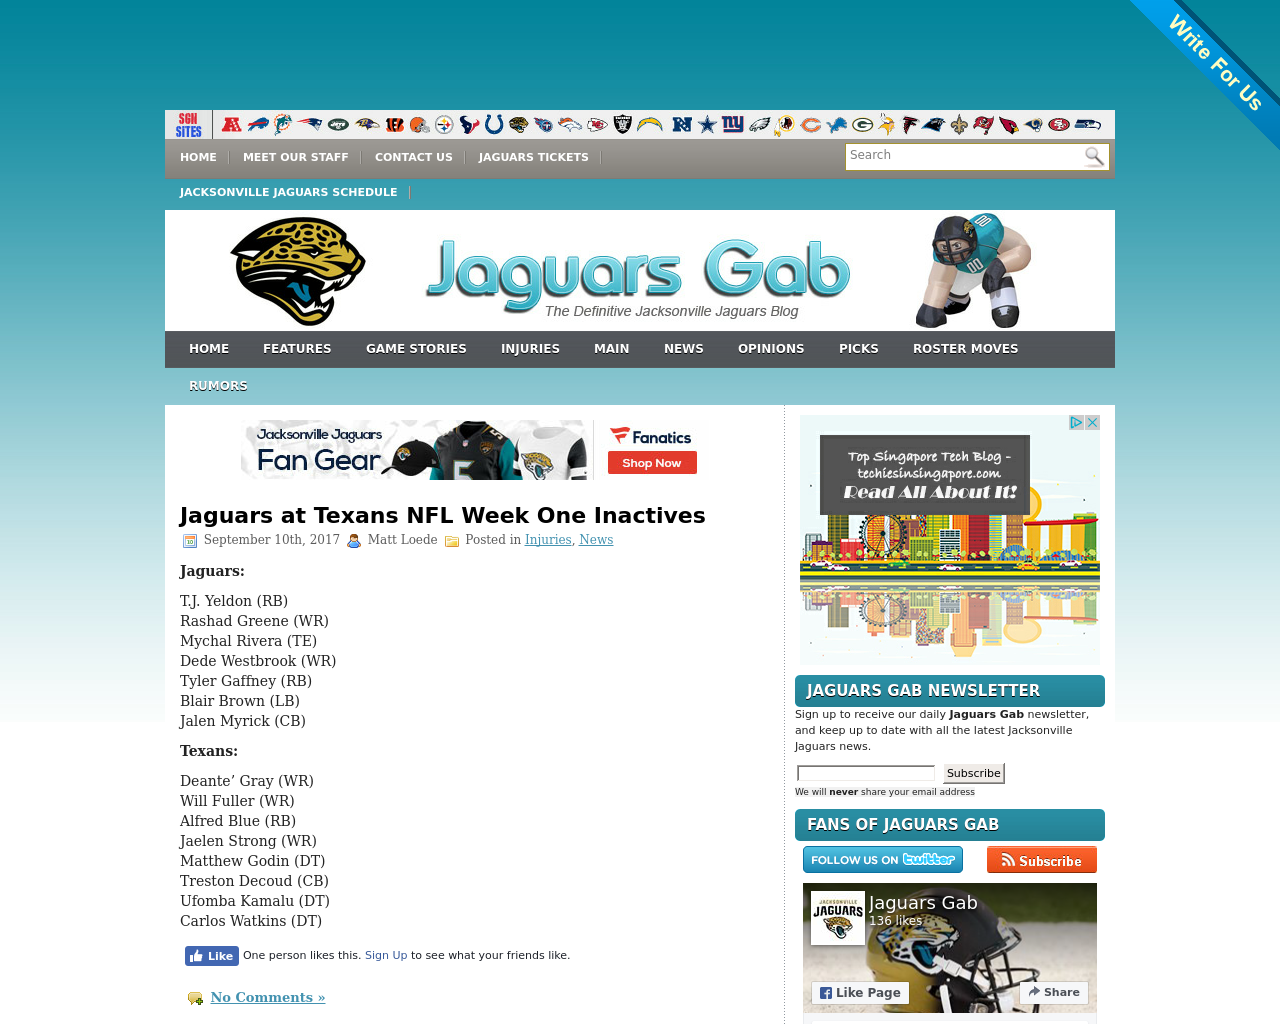 Jaguars-Gab-Advertising-Reviews-Pricing